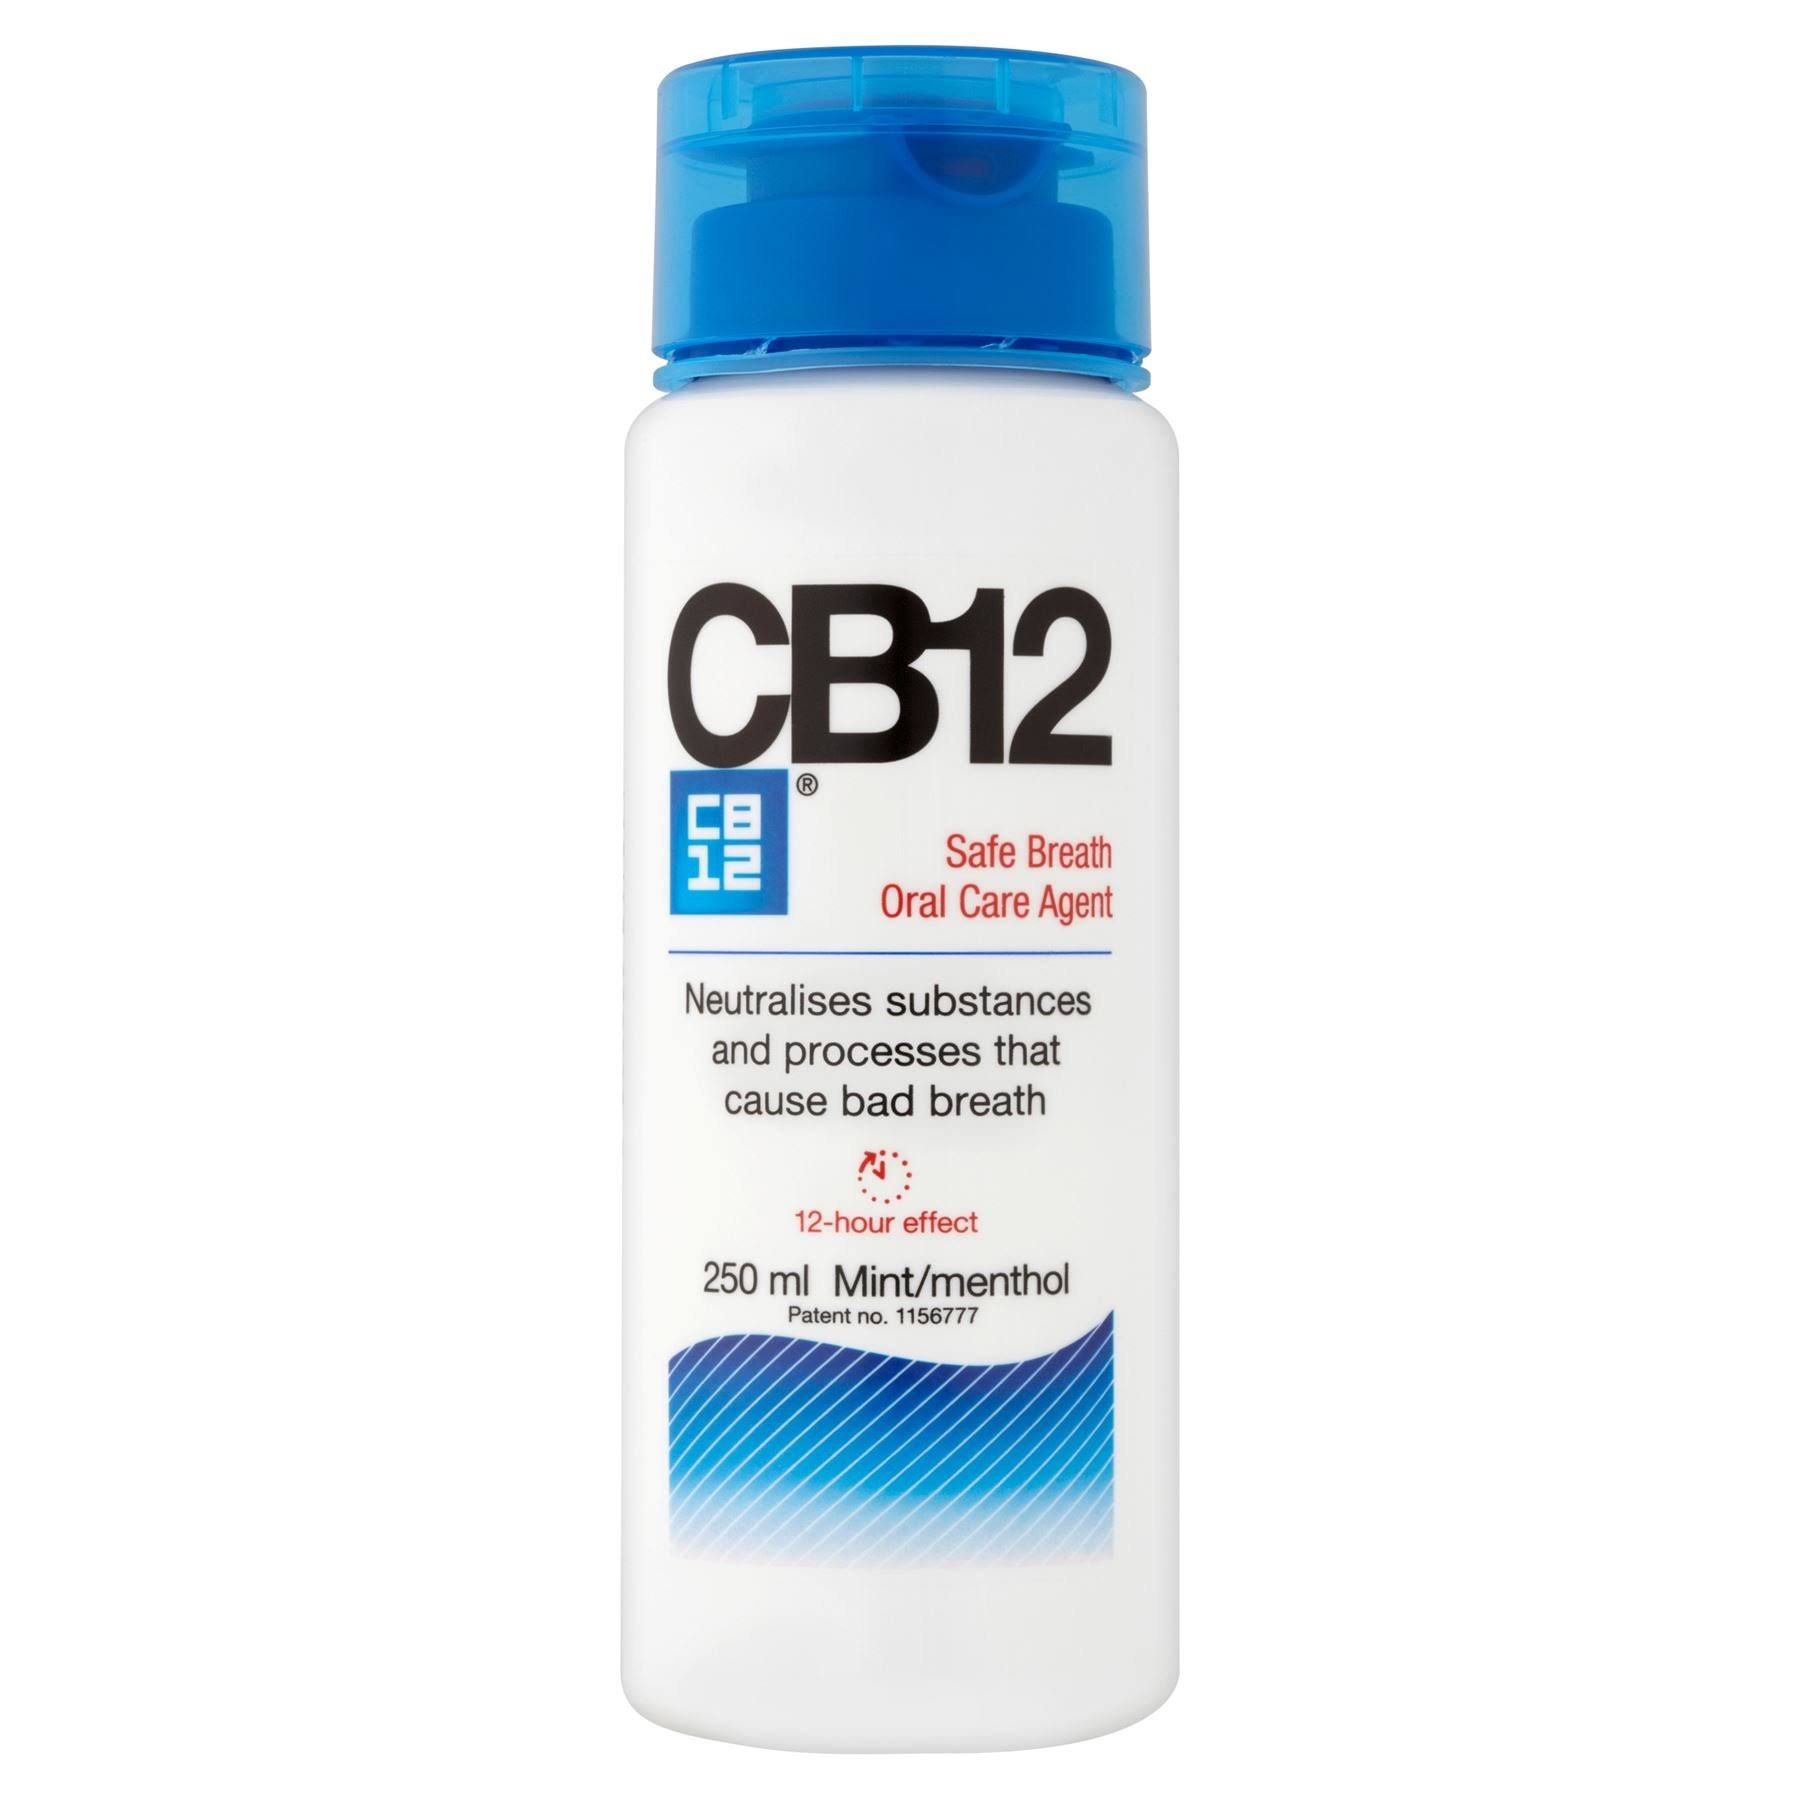 CB12 Oral Care Agent - 250ml, Mint Menthol